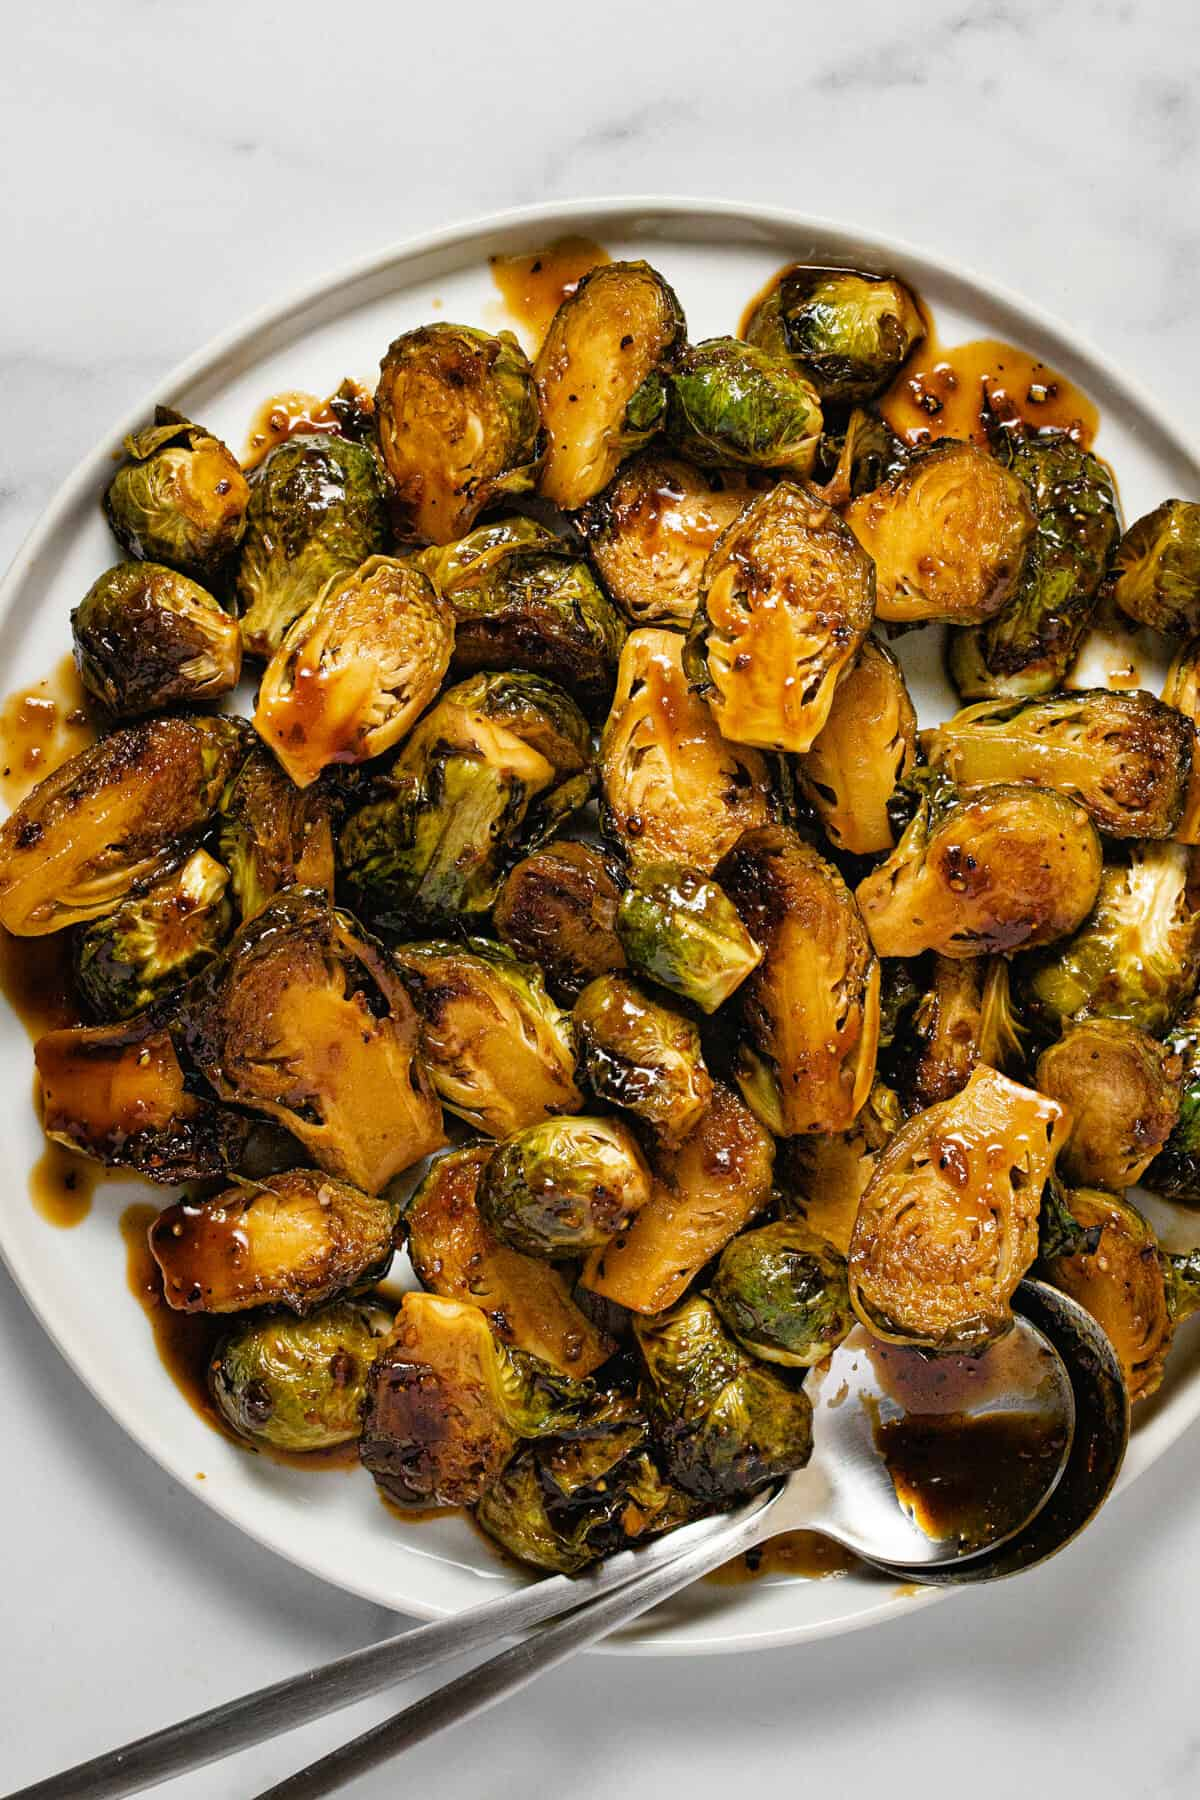 Overhead shot of balsamic glazed Brussel sprouts on a white plate